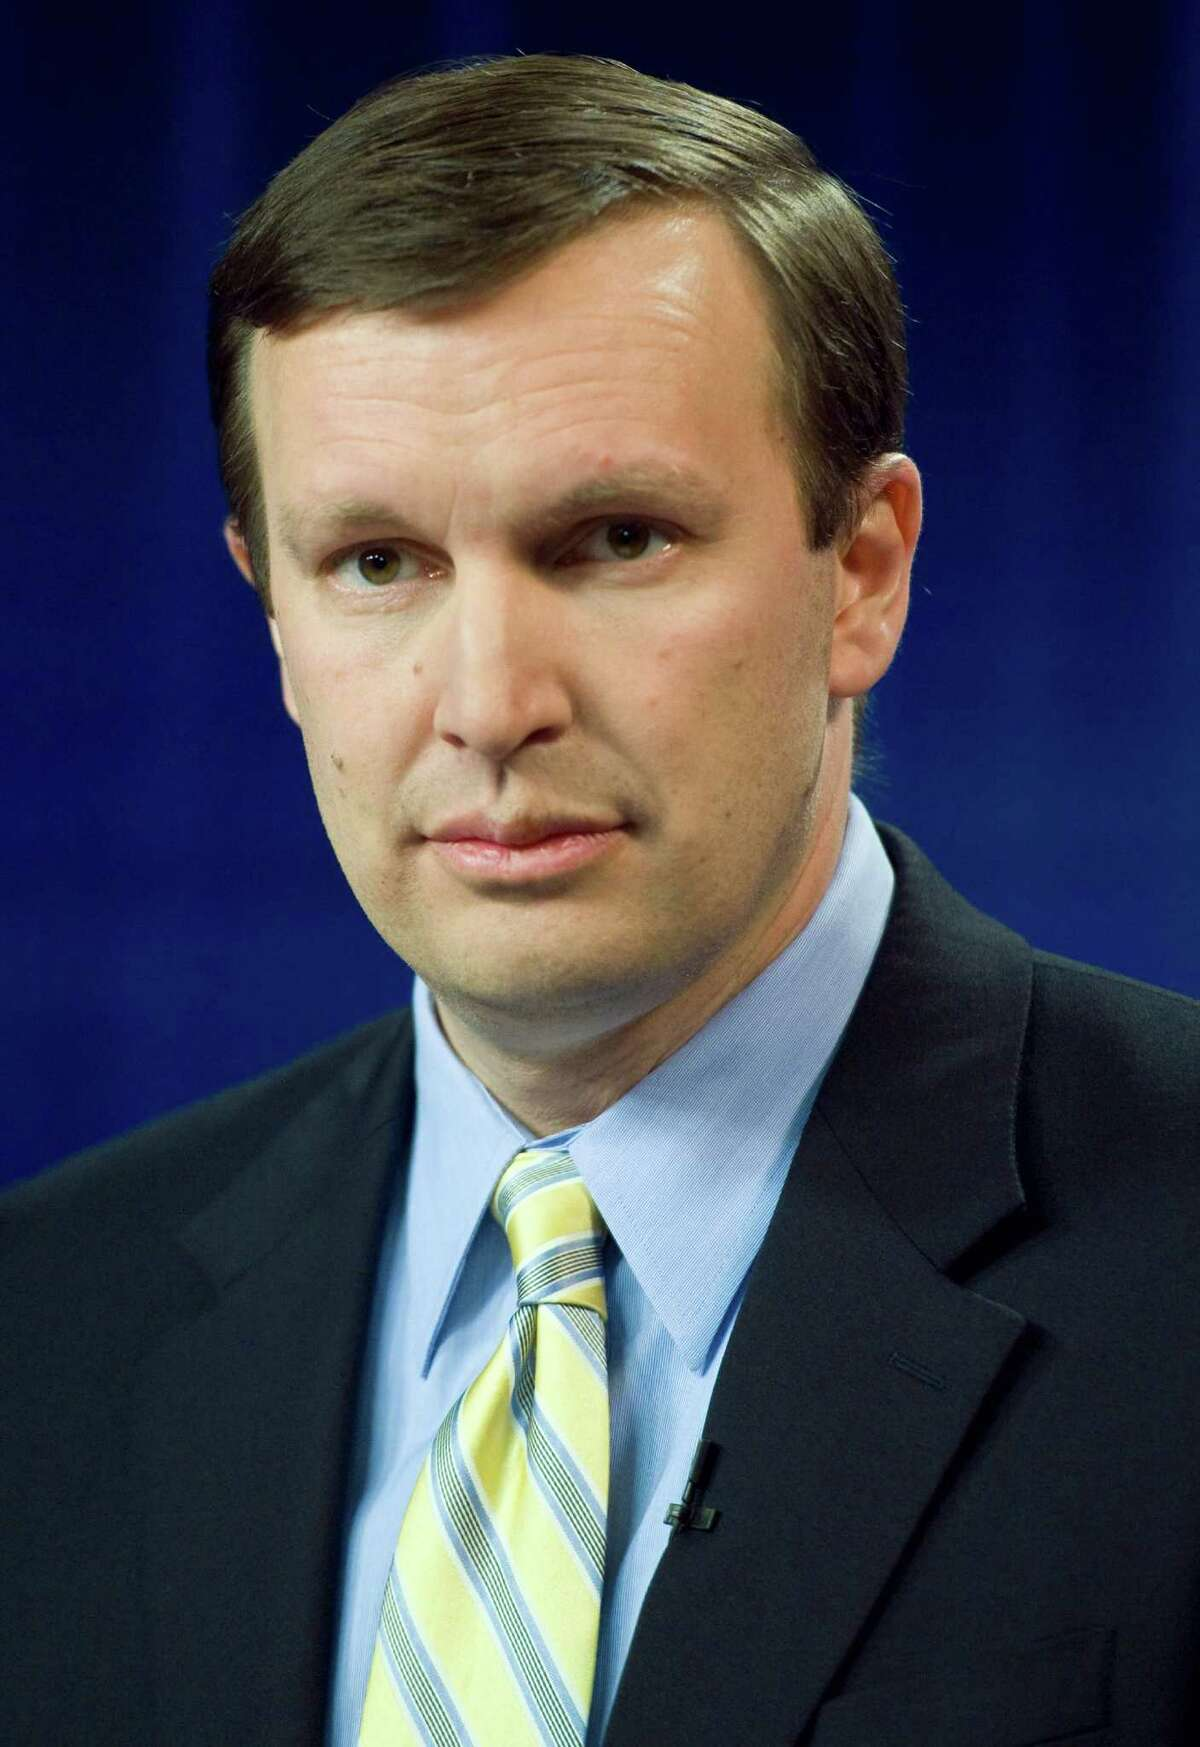 Democratic candidate for U.S. Senate, U.S. Rep. Chris Murphy, D-Conn., stands at a podium before a live televised debate in West Hartford, Conn., Thursday, April 5, 2012. Five Democrats are vying for the party's endorsement in Connecticut's U.S. Senate race to ultimately fill the seat being vacated by the retiring Sen. Joe Lieberman, an independent. (AP Photo/Jessica Hill)